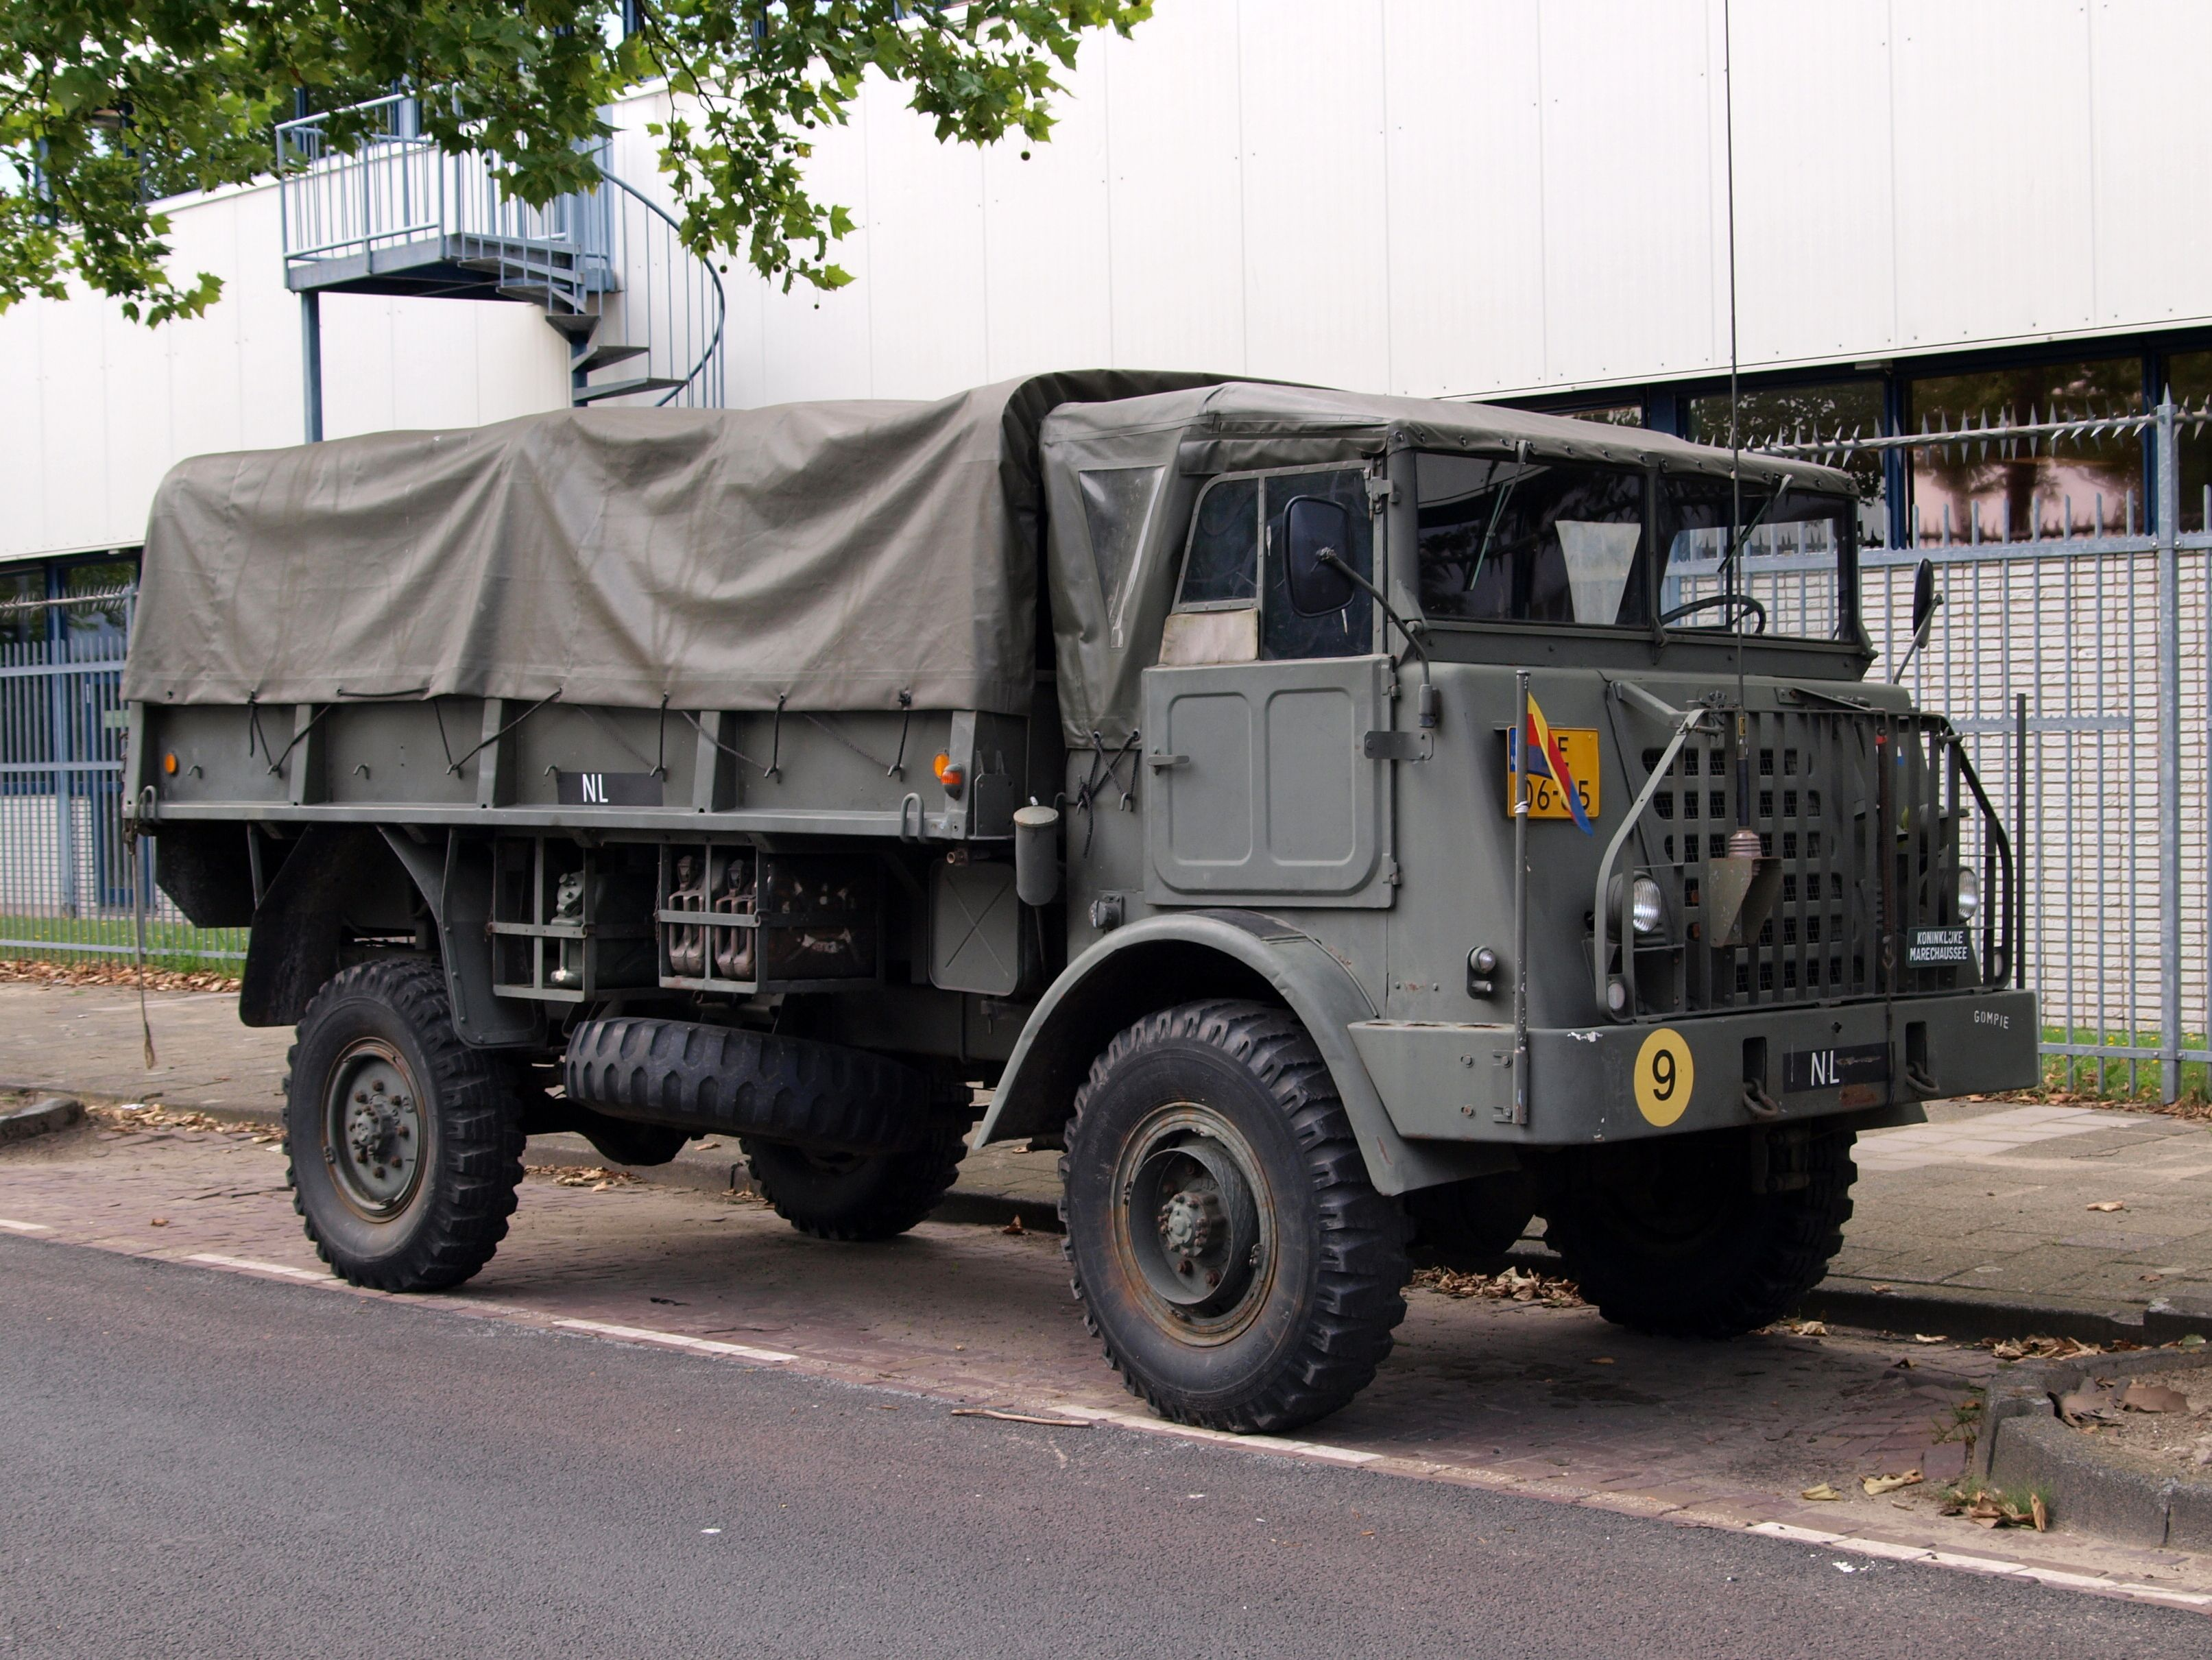 Daf Ya 314 4x4 Counterpart To The Bigger 328 Introduced In 1955 4400 Examples Were Bought As Resupply Trucks Militaire Voertuigen Militair Voertuigen